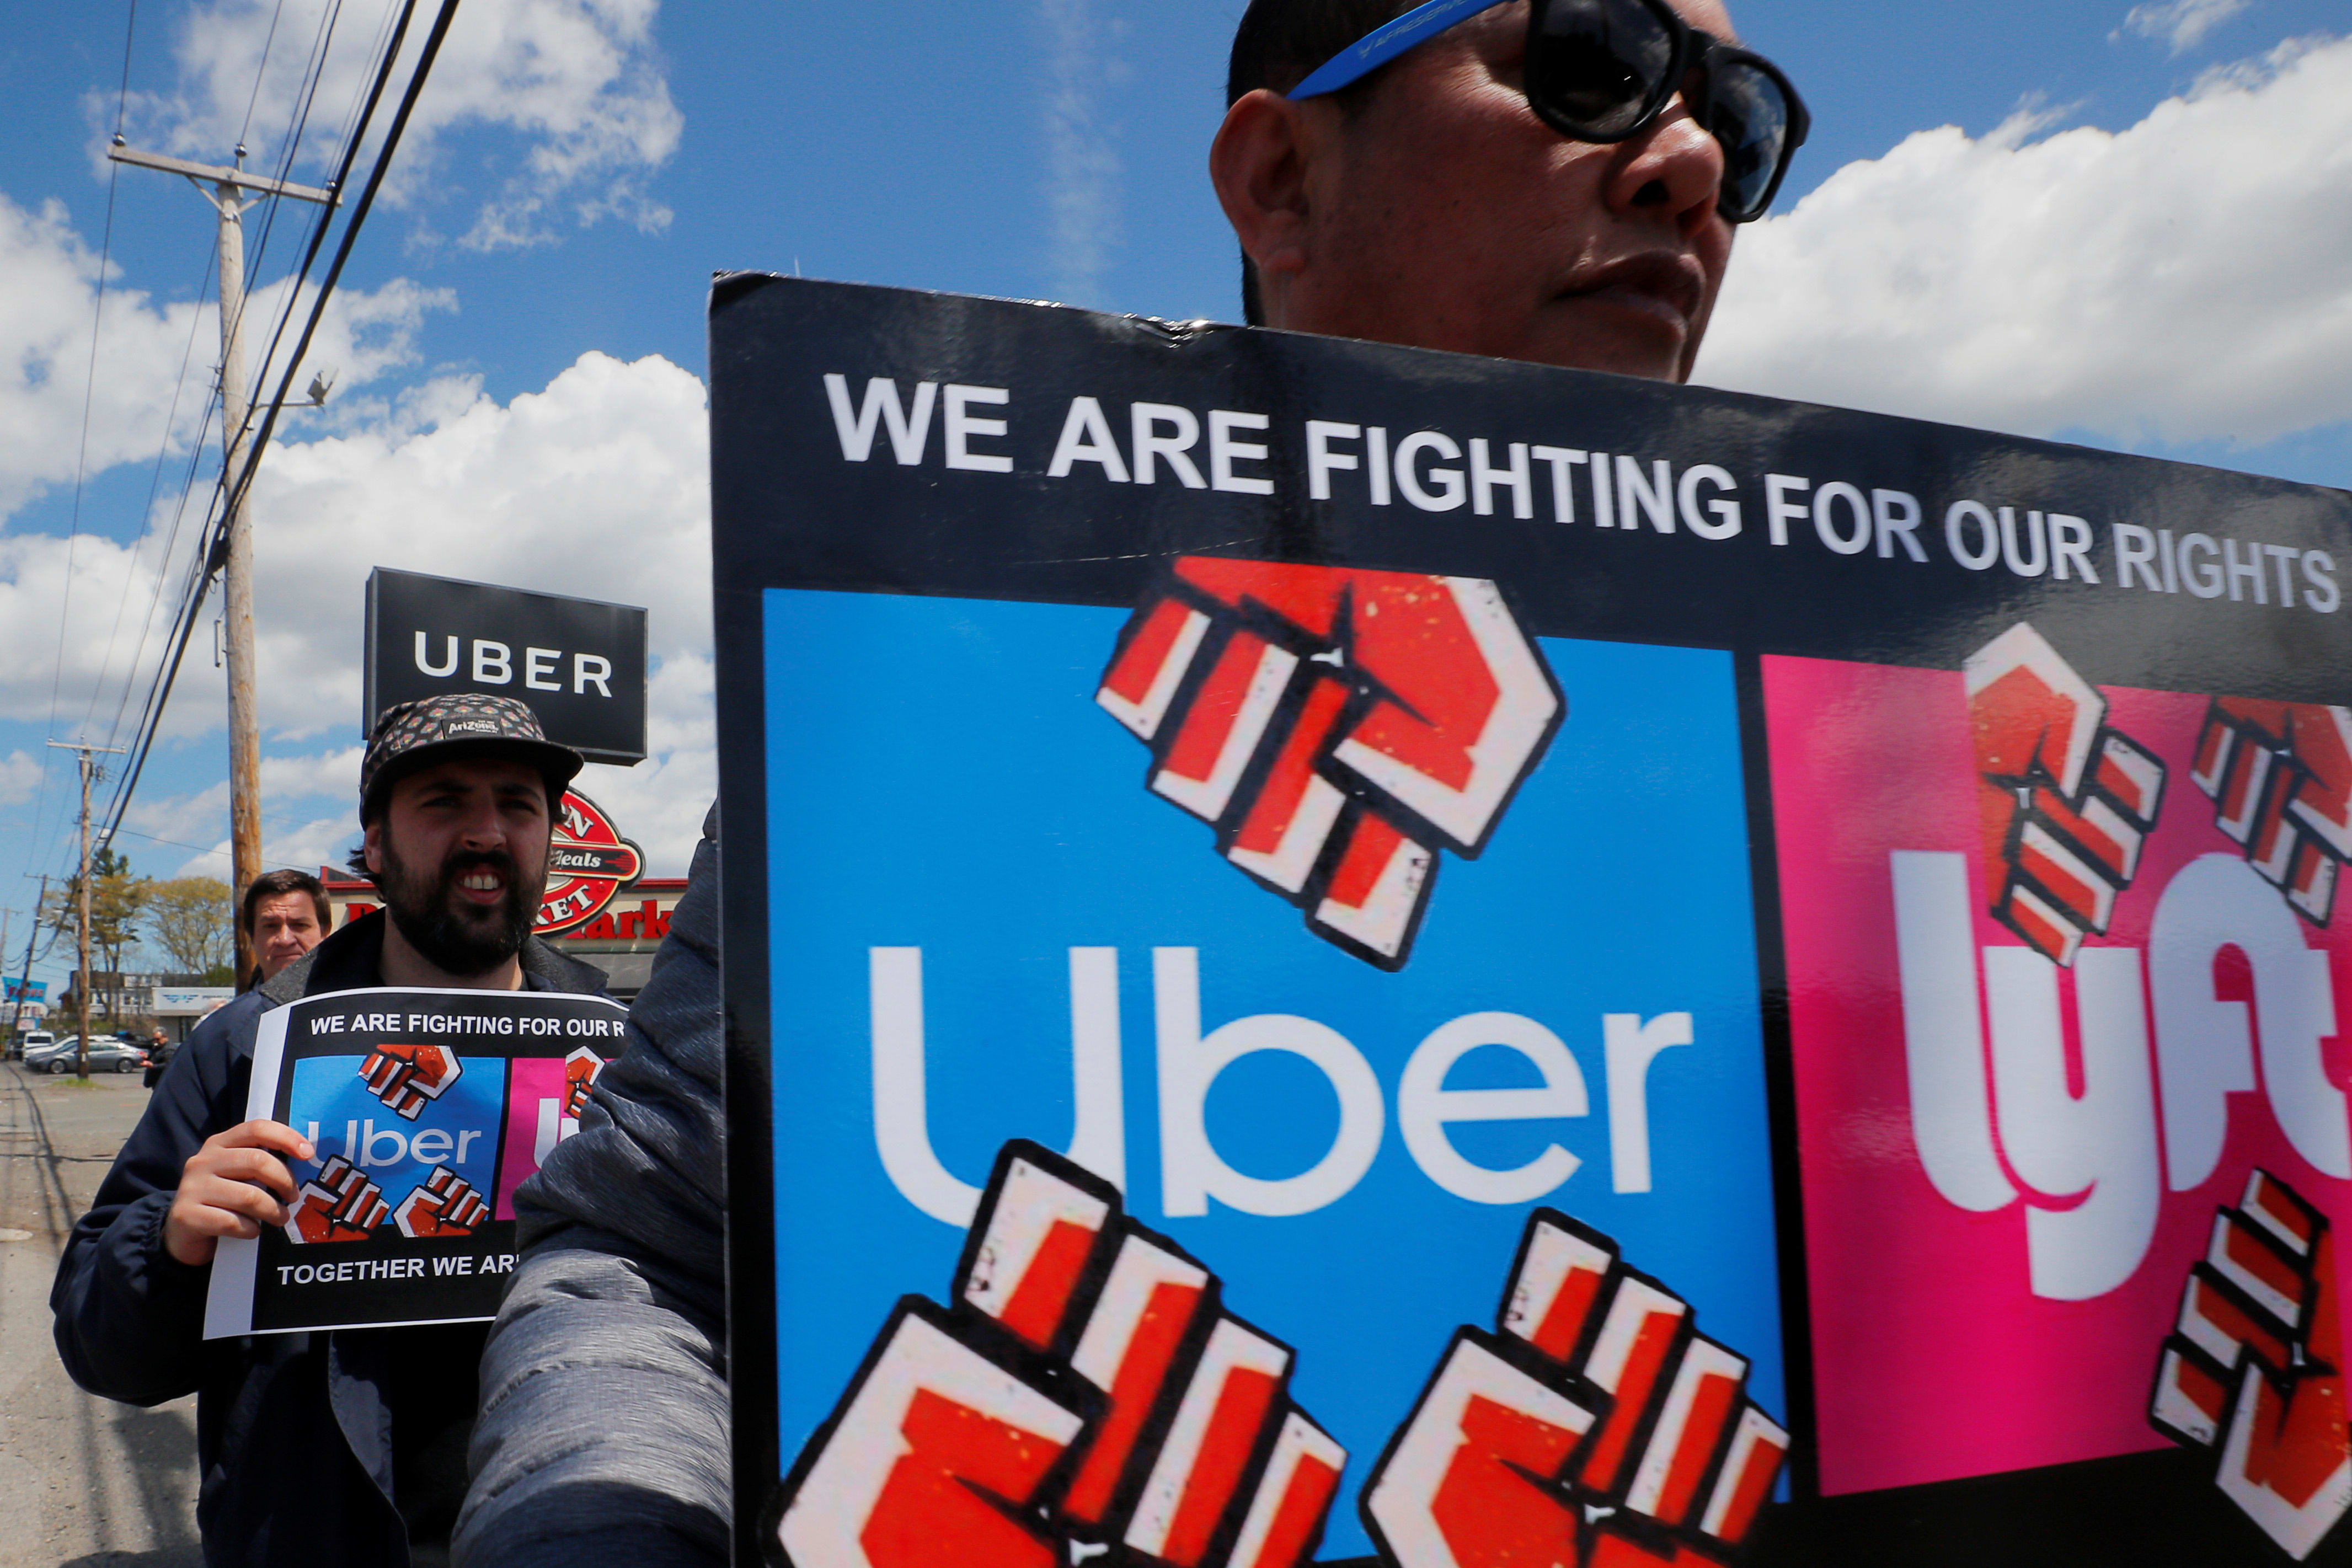 Uber drivers are protesting again. Here's what the job is really like